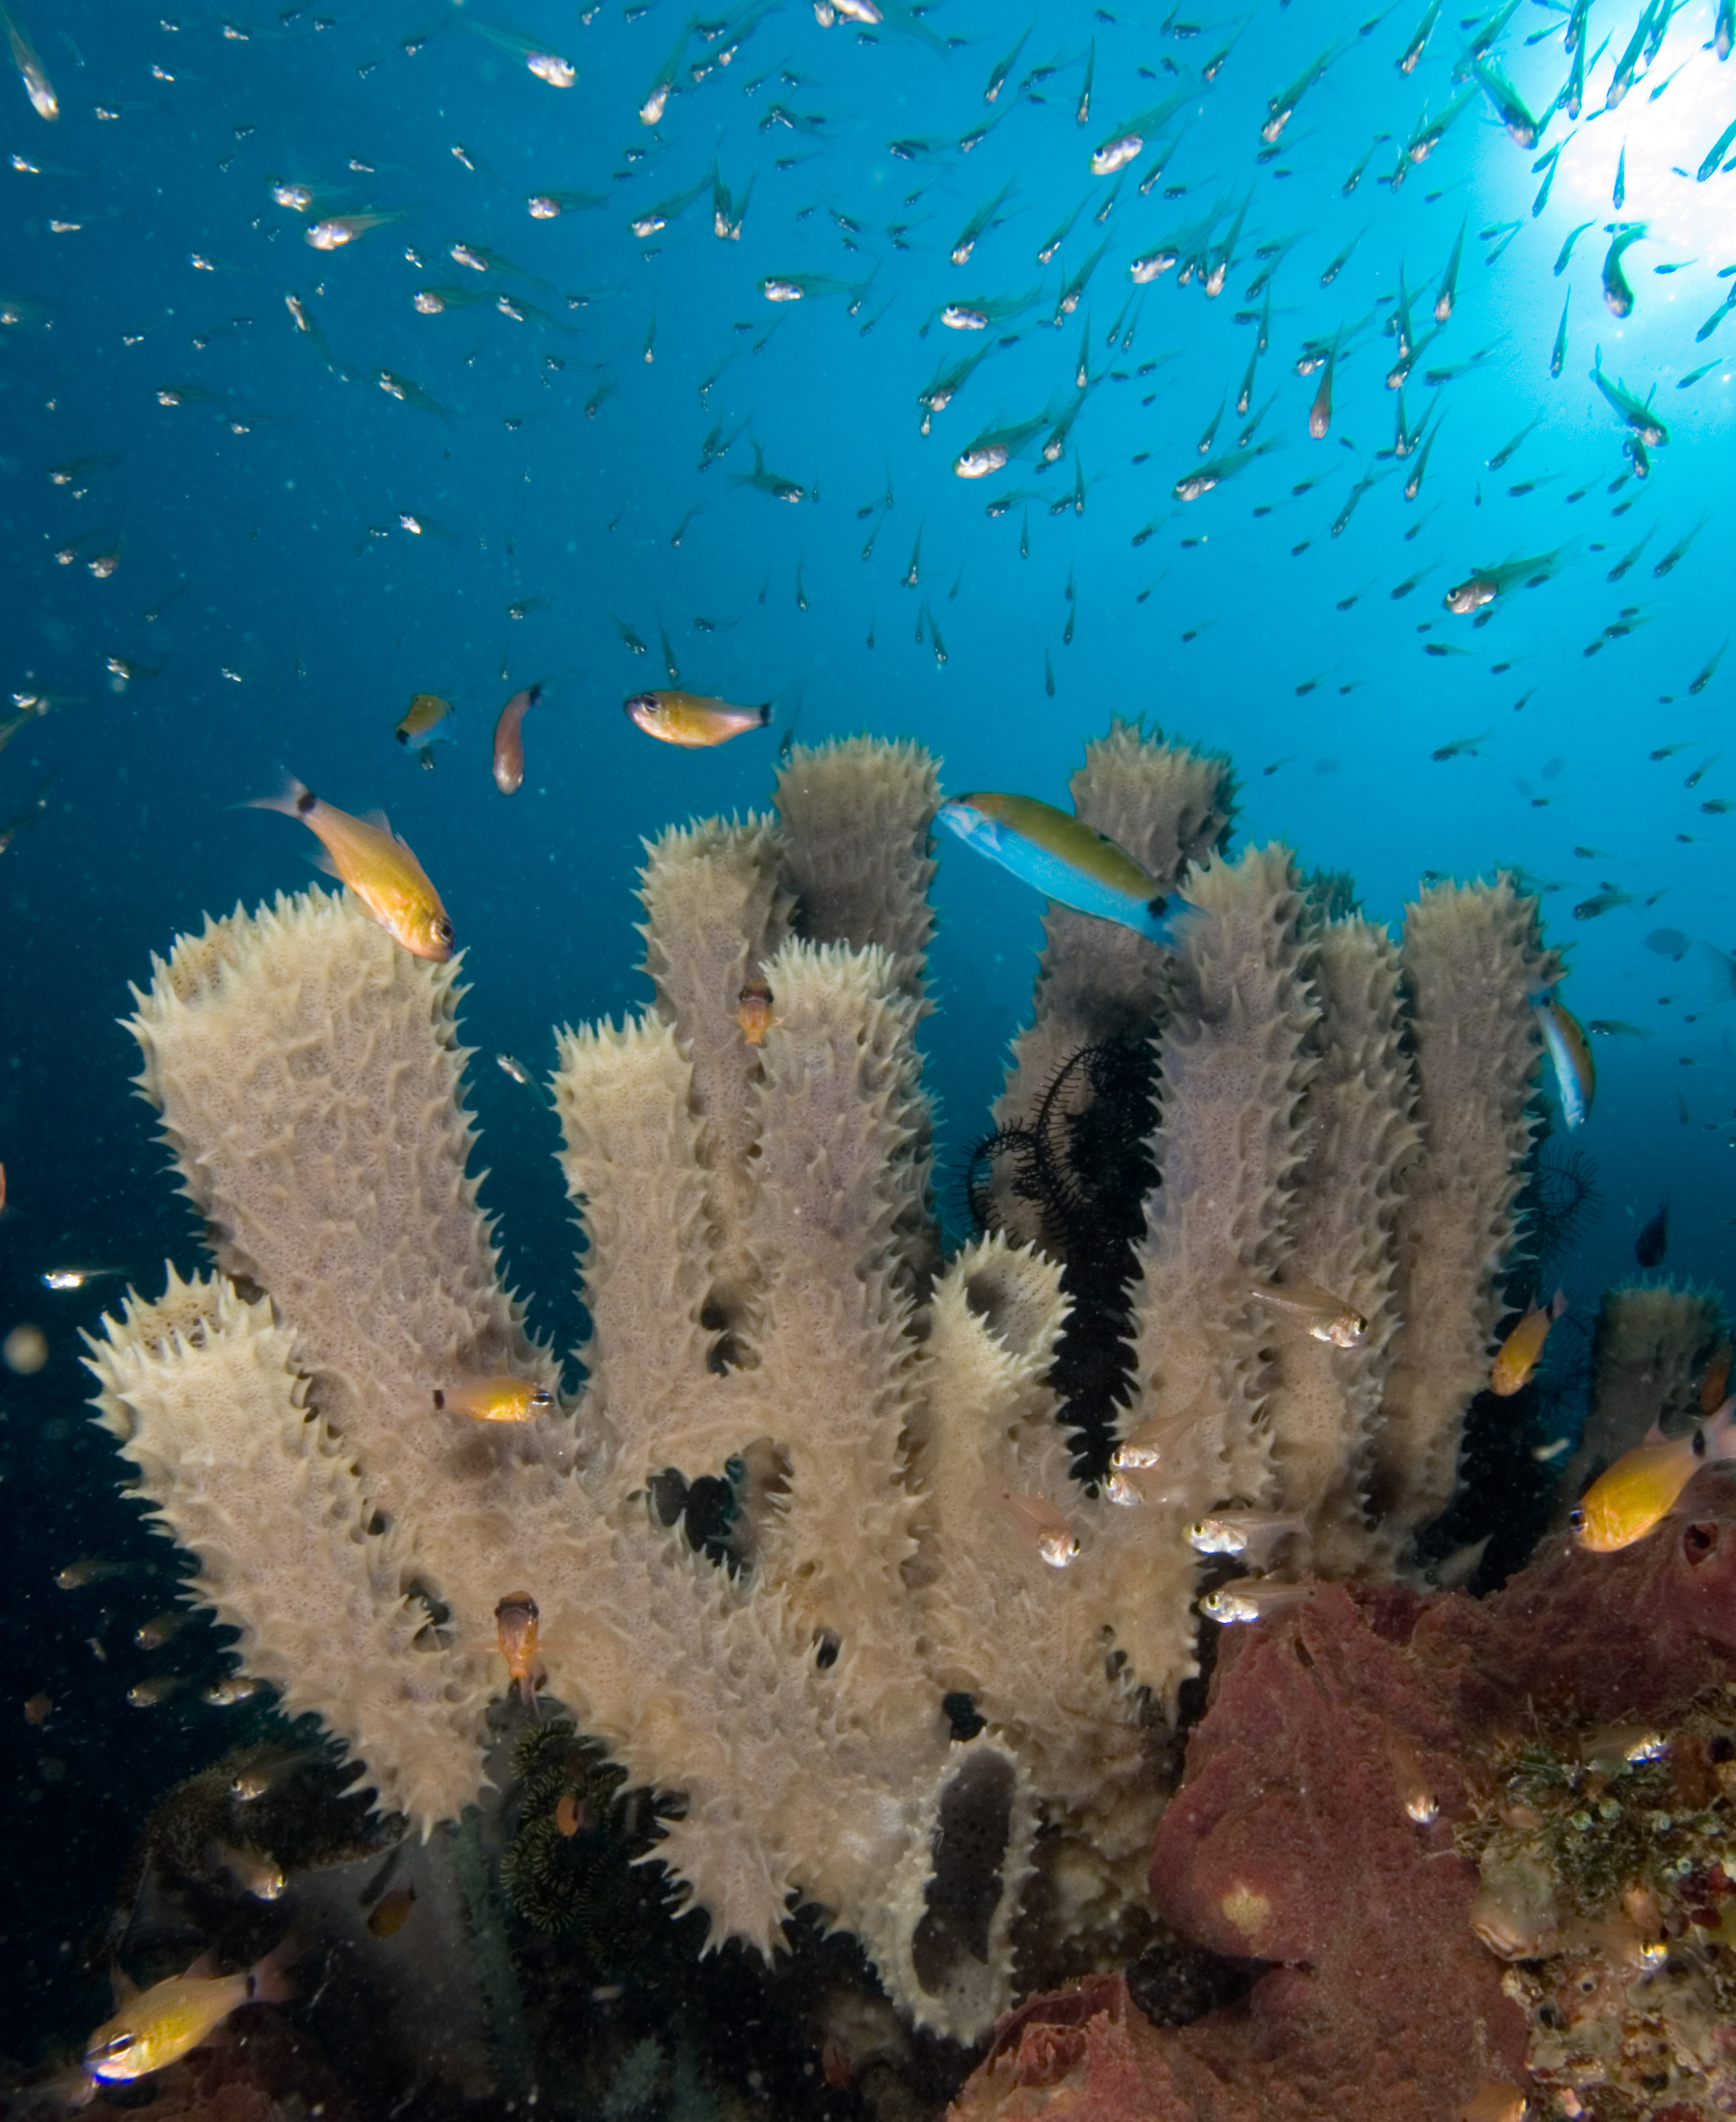 Callyspongia sp. (Tube sponge) by Nick Hobgood